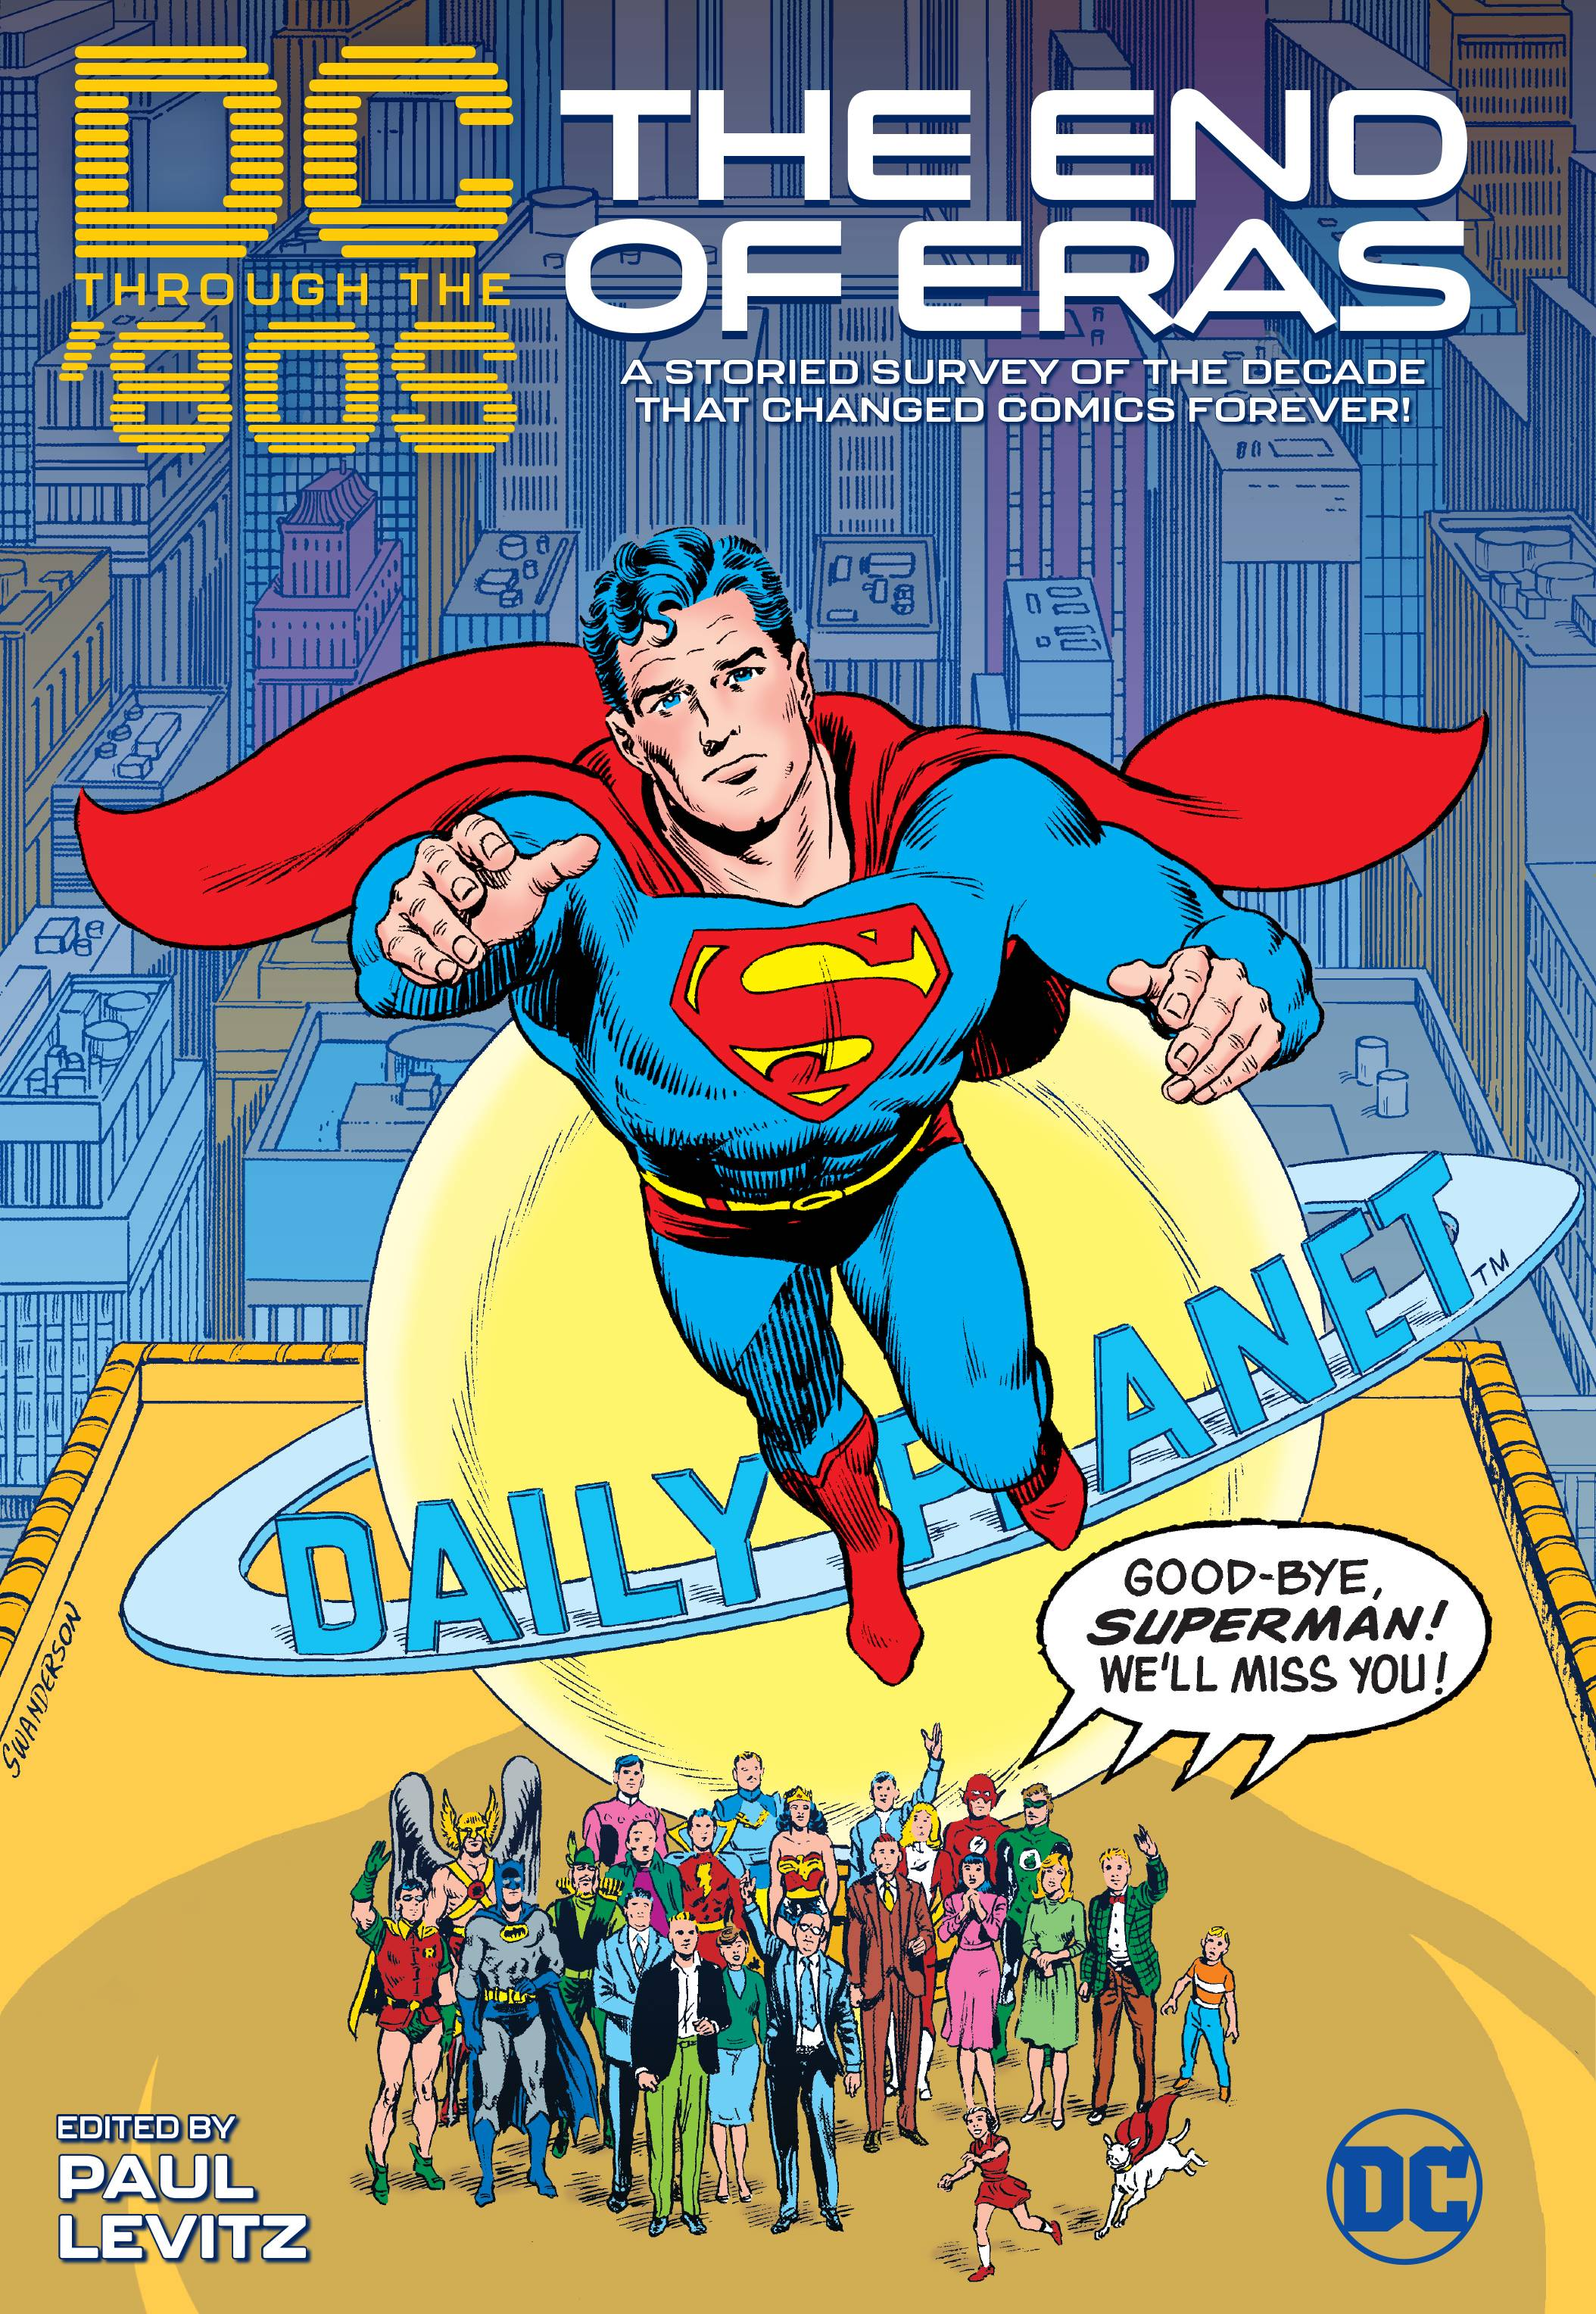 DC THROUGH THE 80S THE END OF AN ERA HC